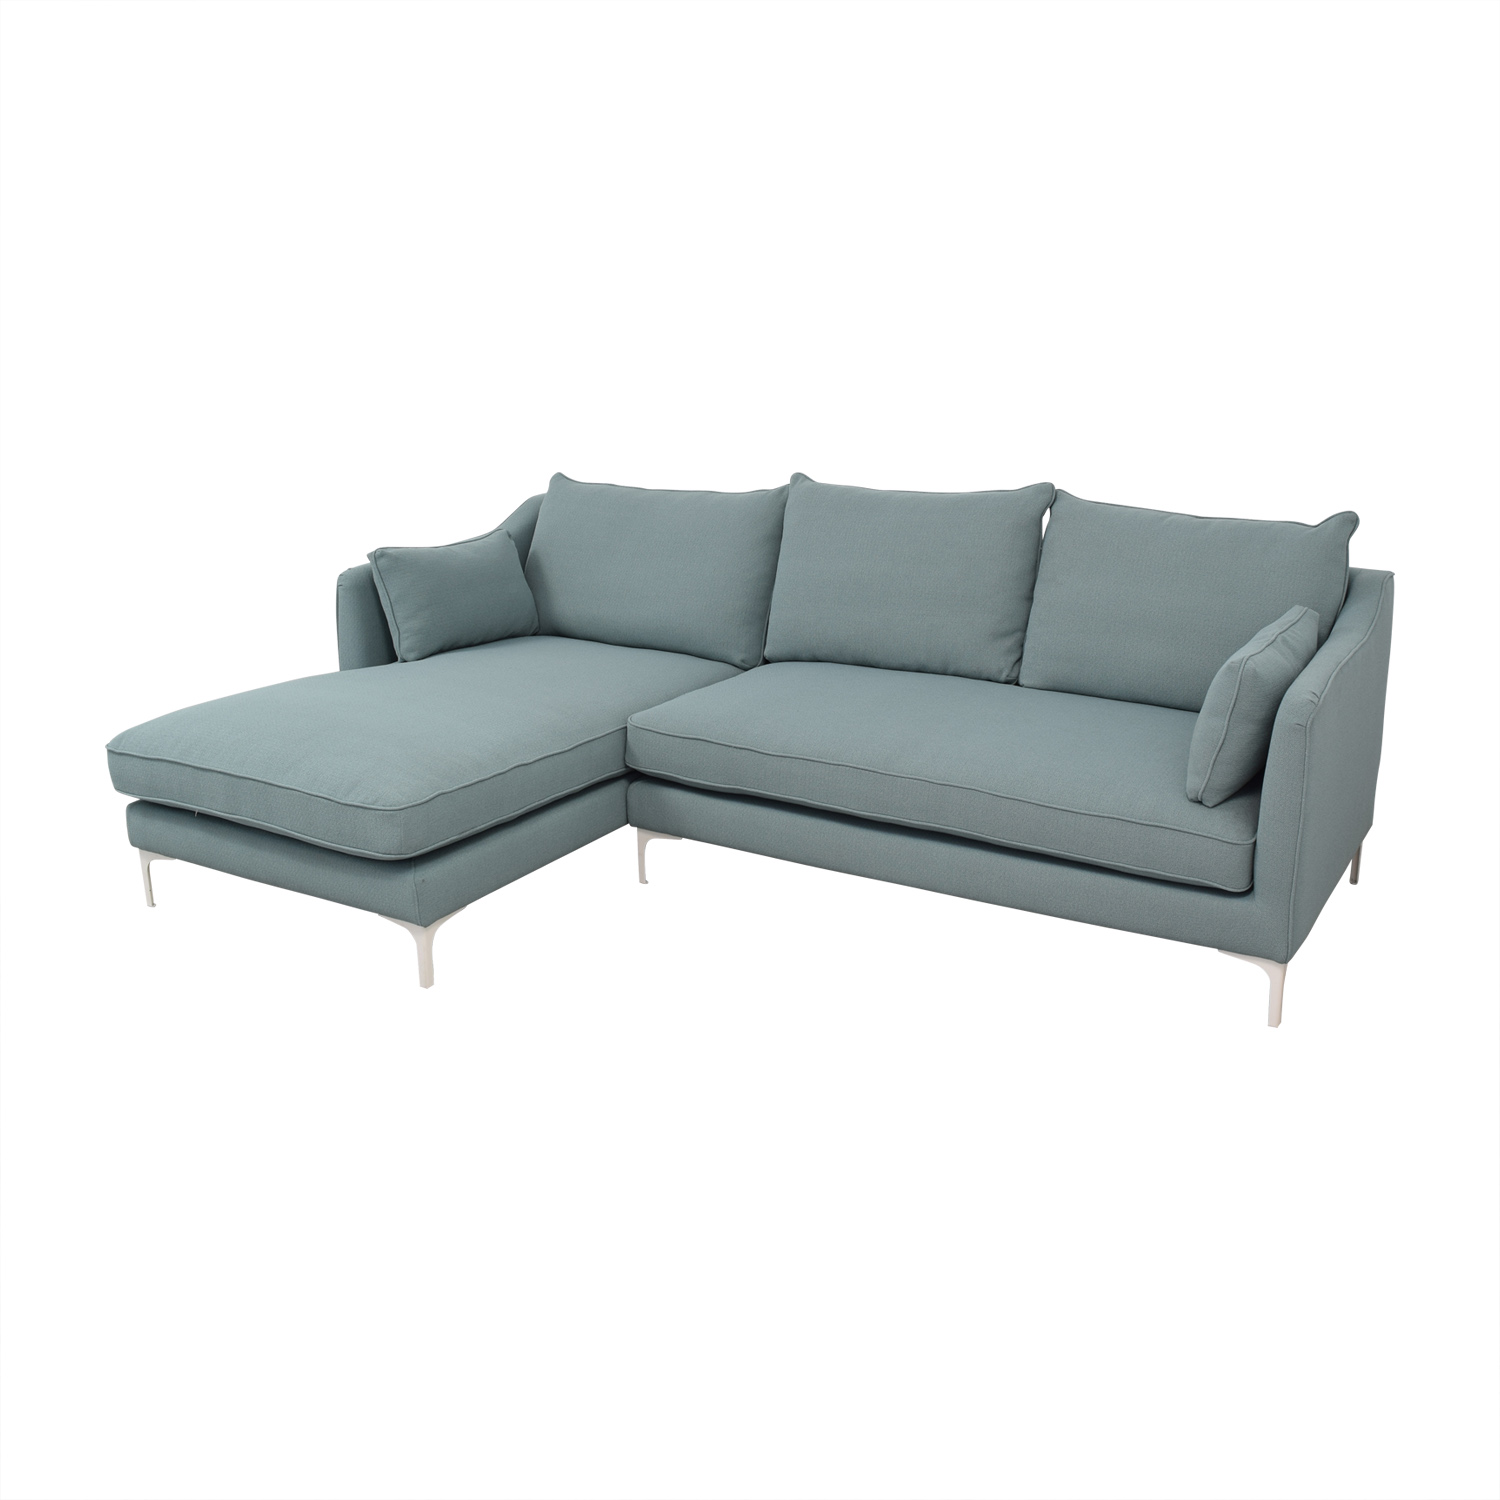 72% OFF - Mint Green Caitlin Left Arm Chaise Sectional Sofa / Sofas